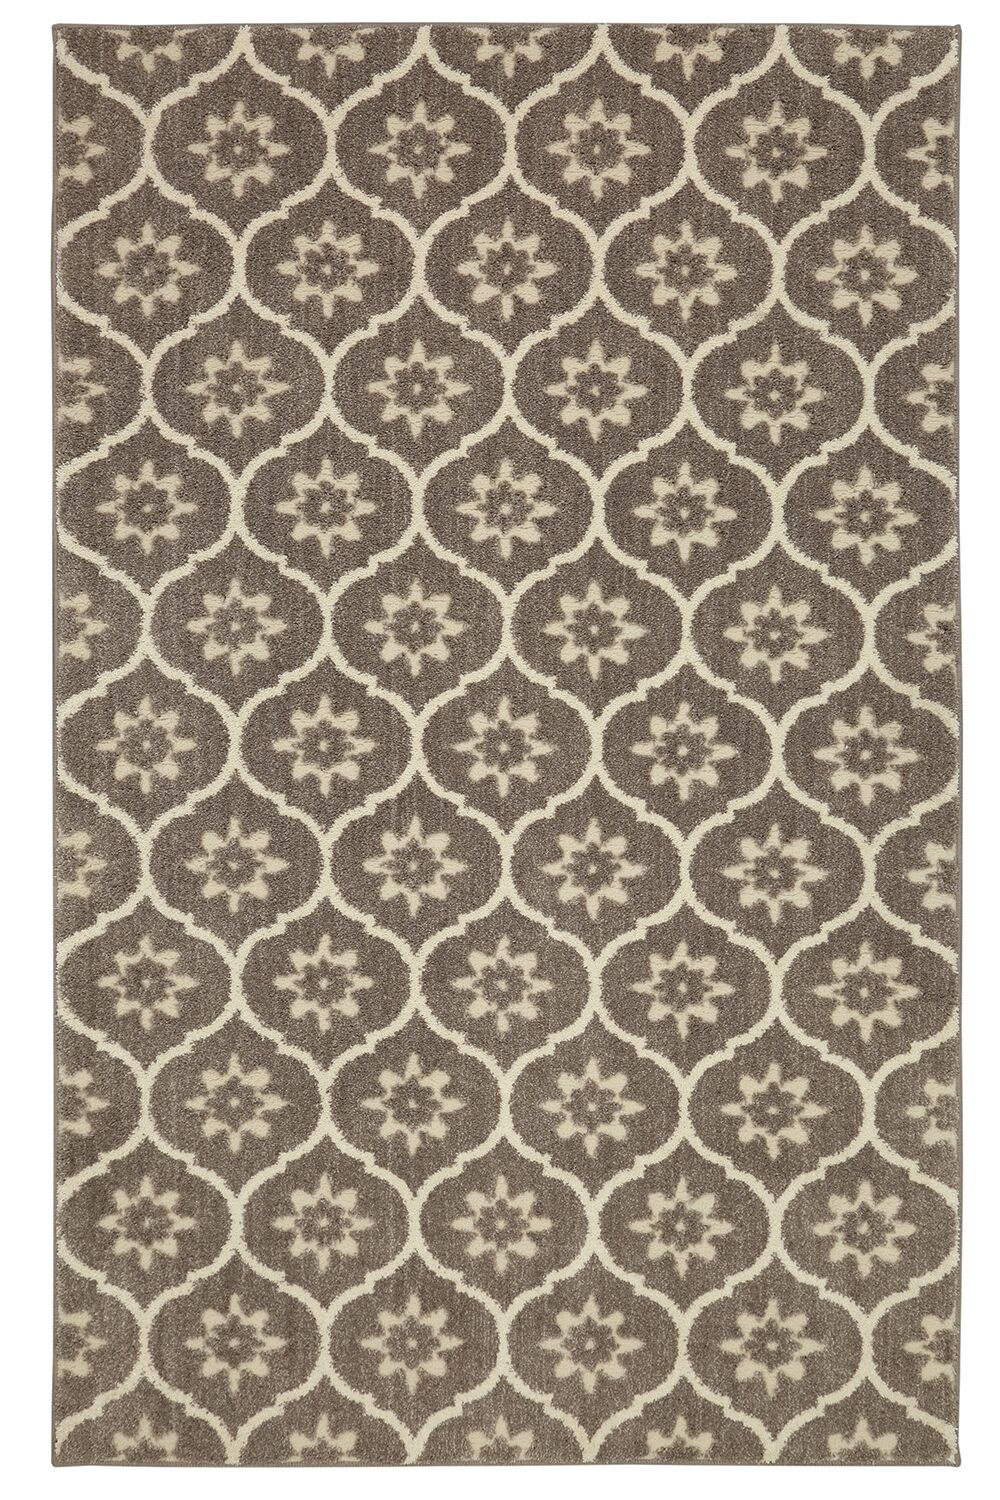 Pinaire Gray/Beige Area Rug Rug Size: Rectangle 2'1